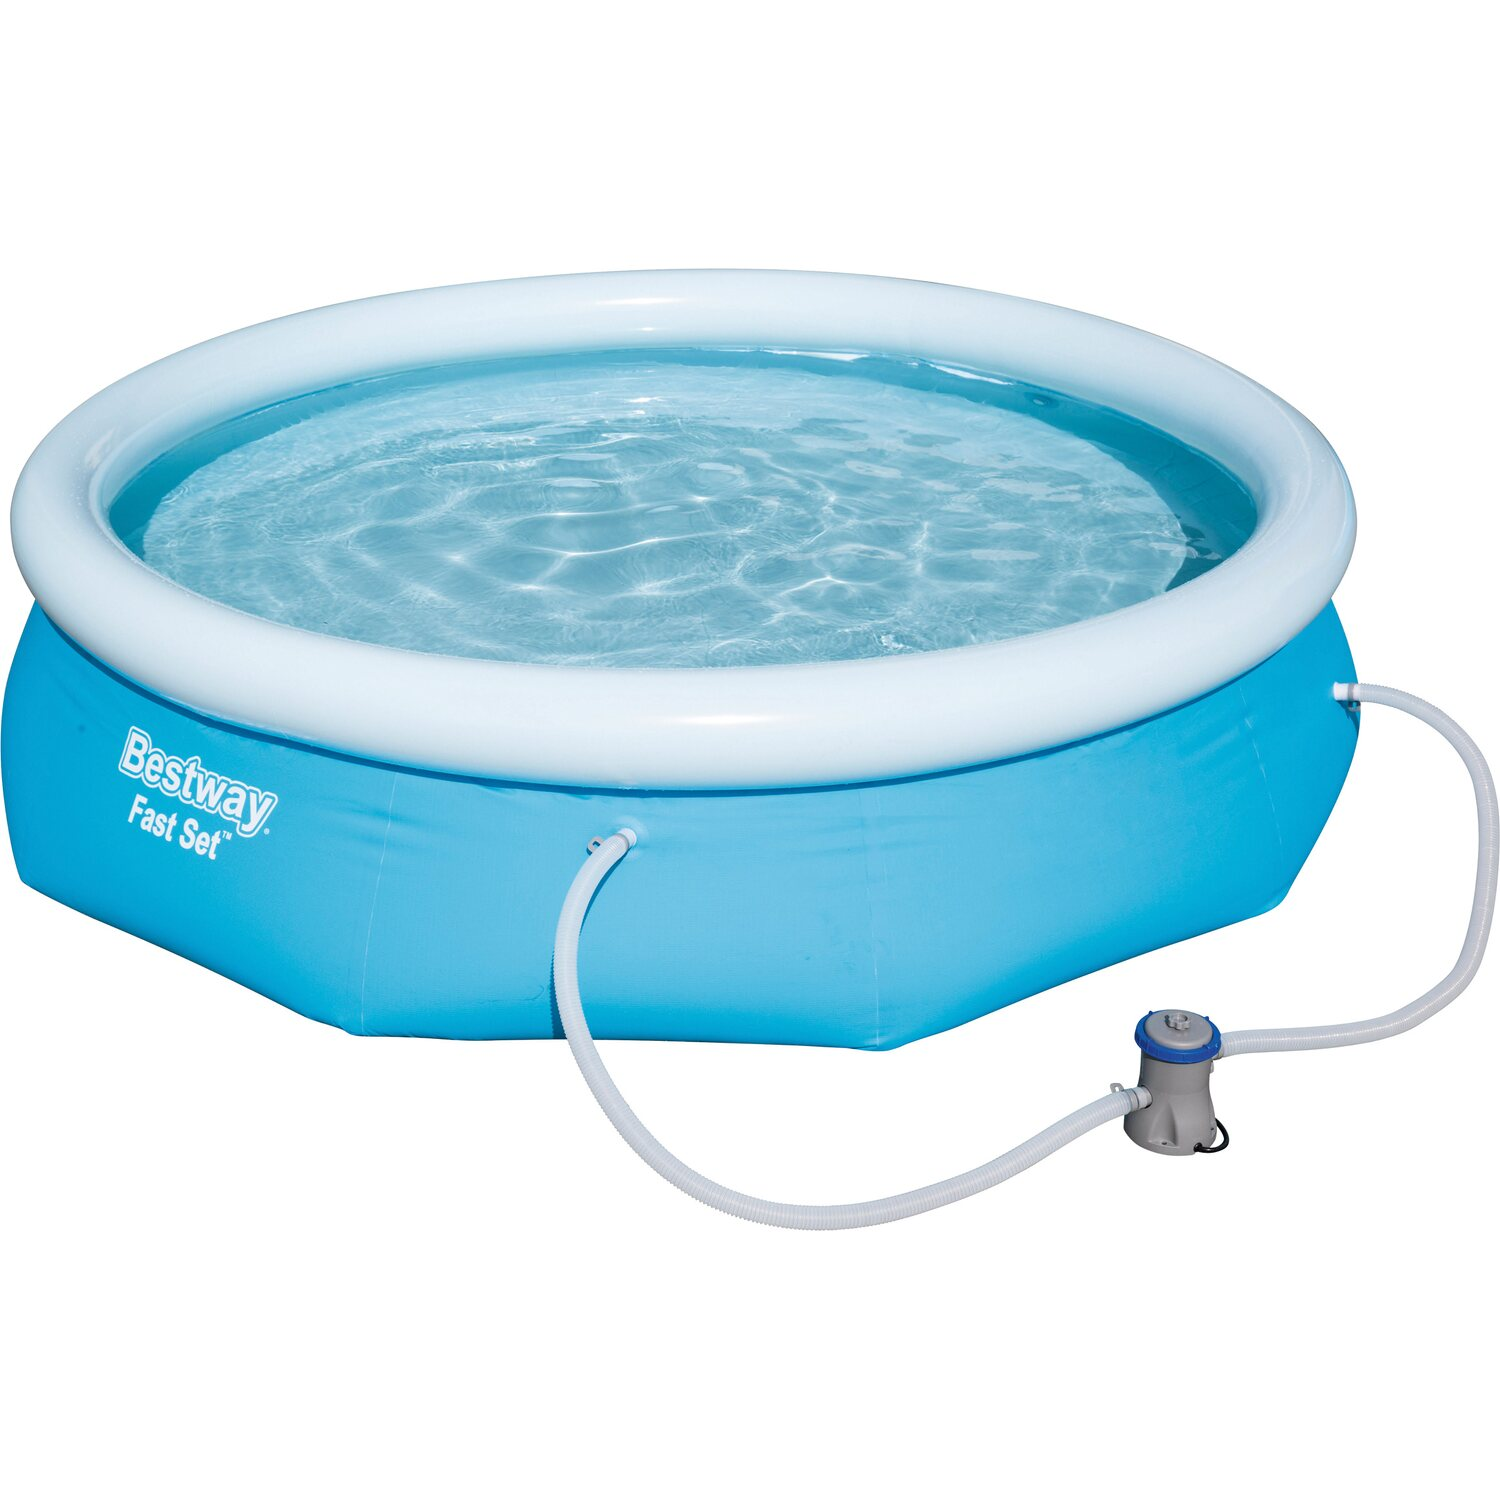 Ovale pools zum aufstellen wo97 hitoiro for Obi intex pool